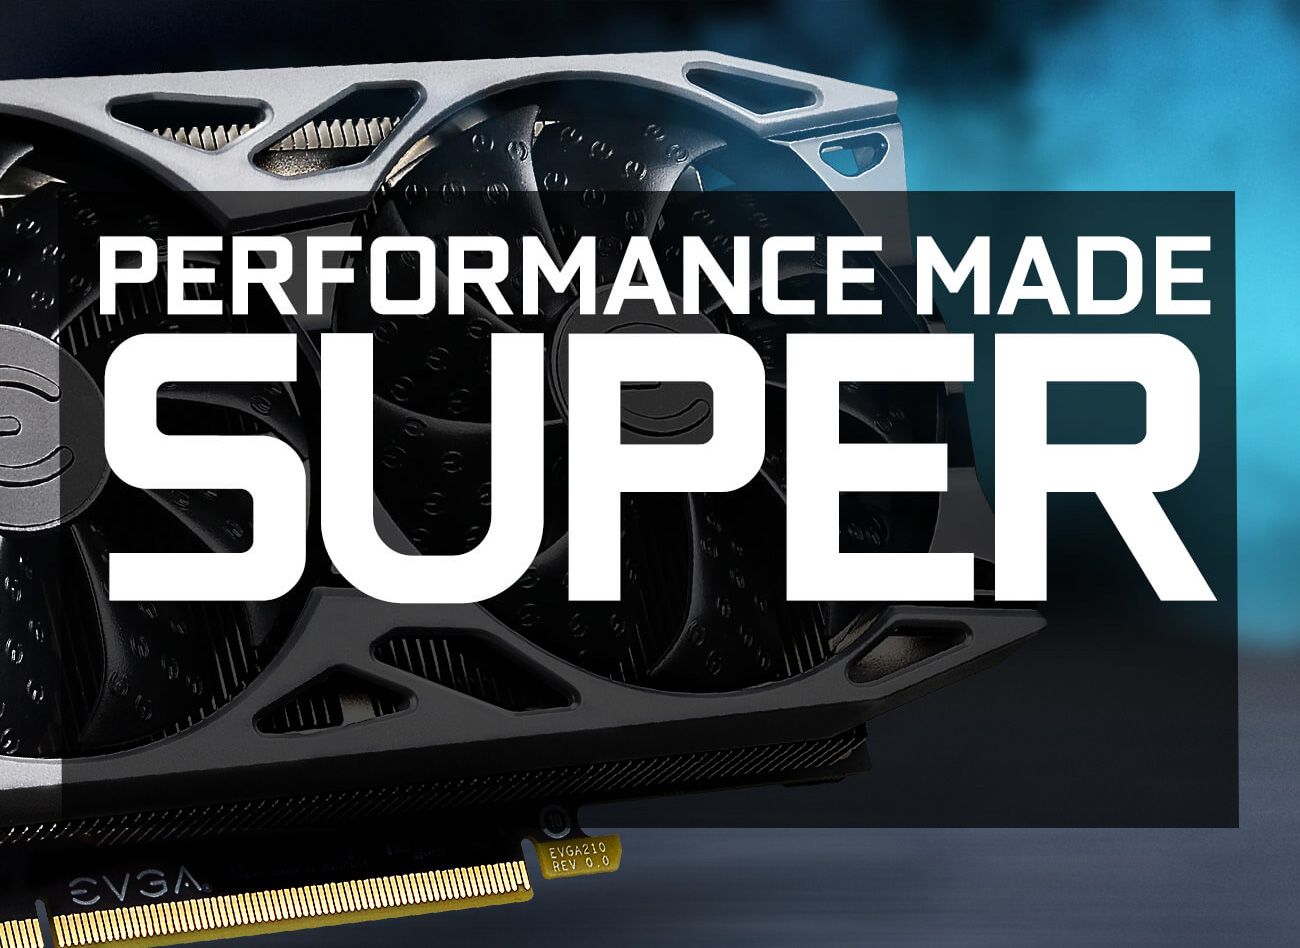 GeForce GTX 1660 SUPER graphics cards as background with performance made super